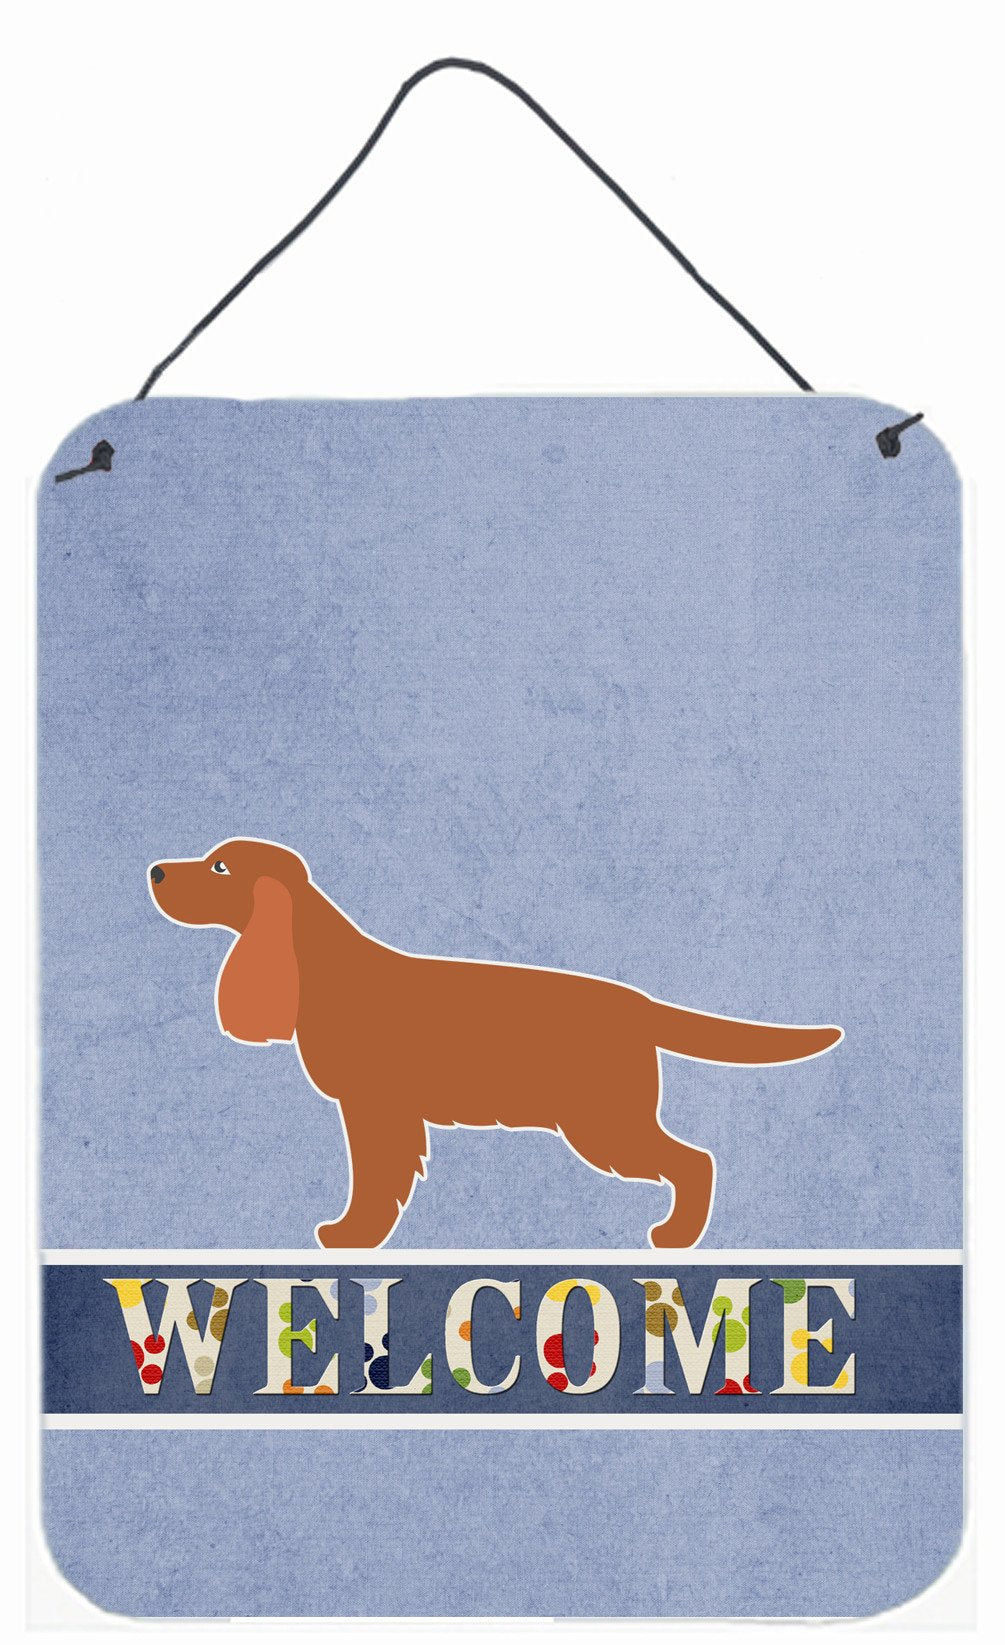 English Cocker Spaniel Welcome Wall or Door Hanging Prints BB5516DS1216 by Caroline's Treasures